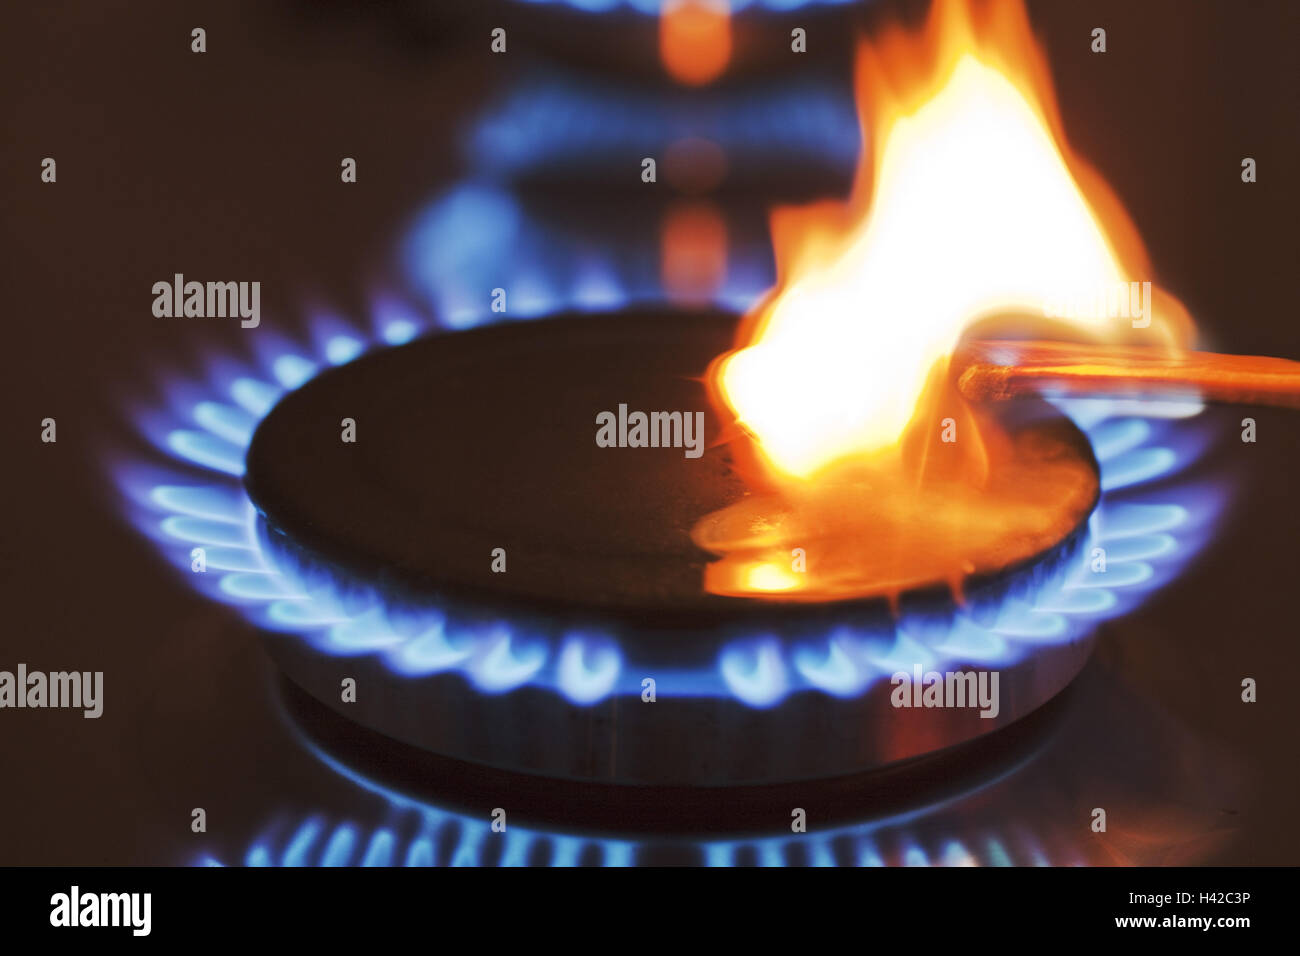 Match, gas flame, culinary focus, gas range, detail, - Stock Image